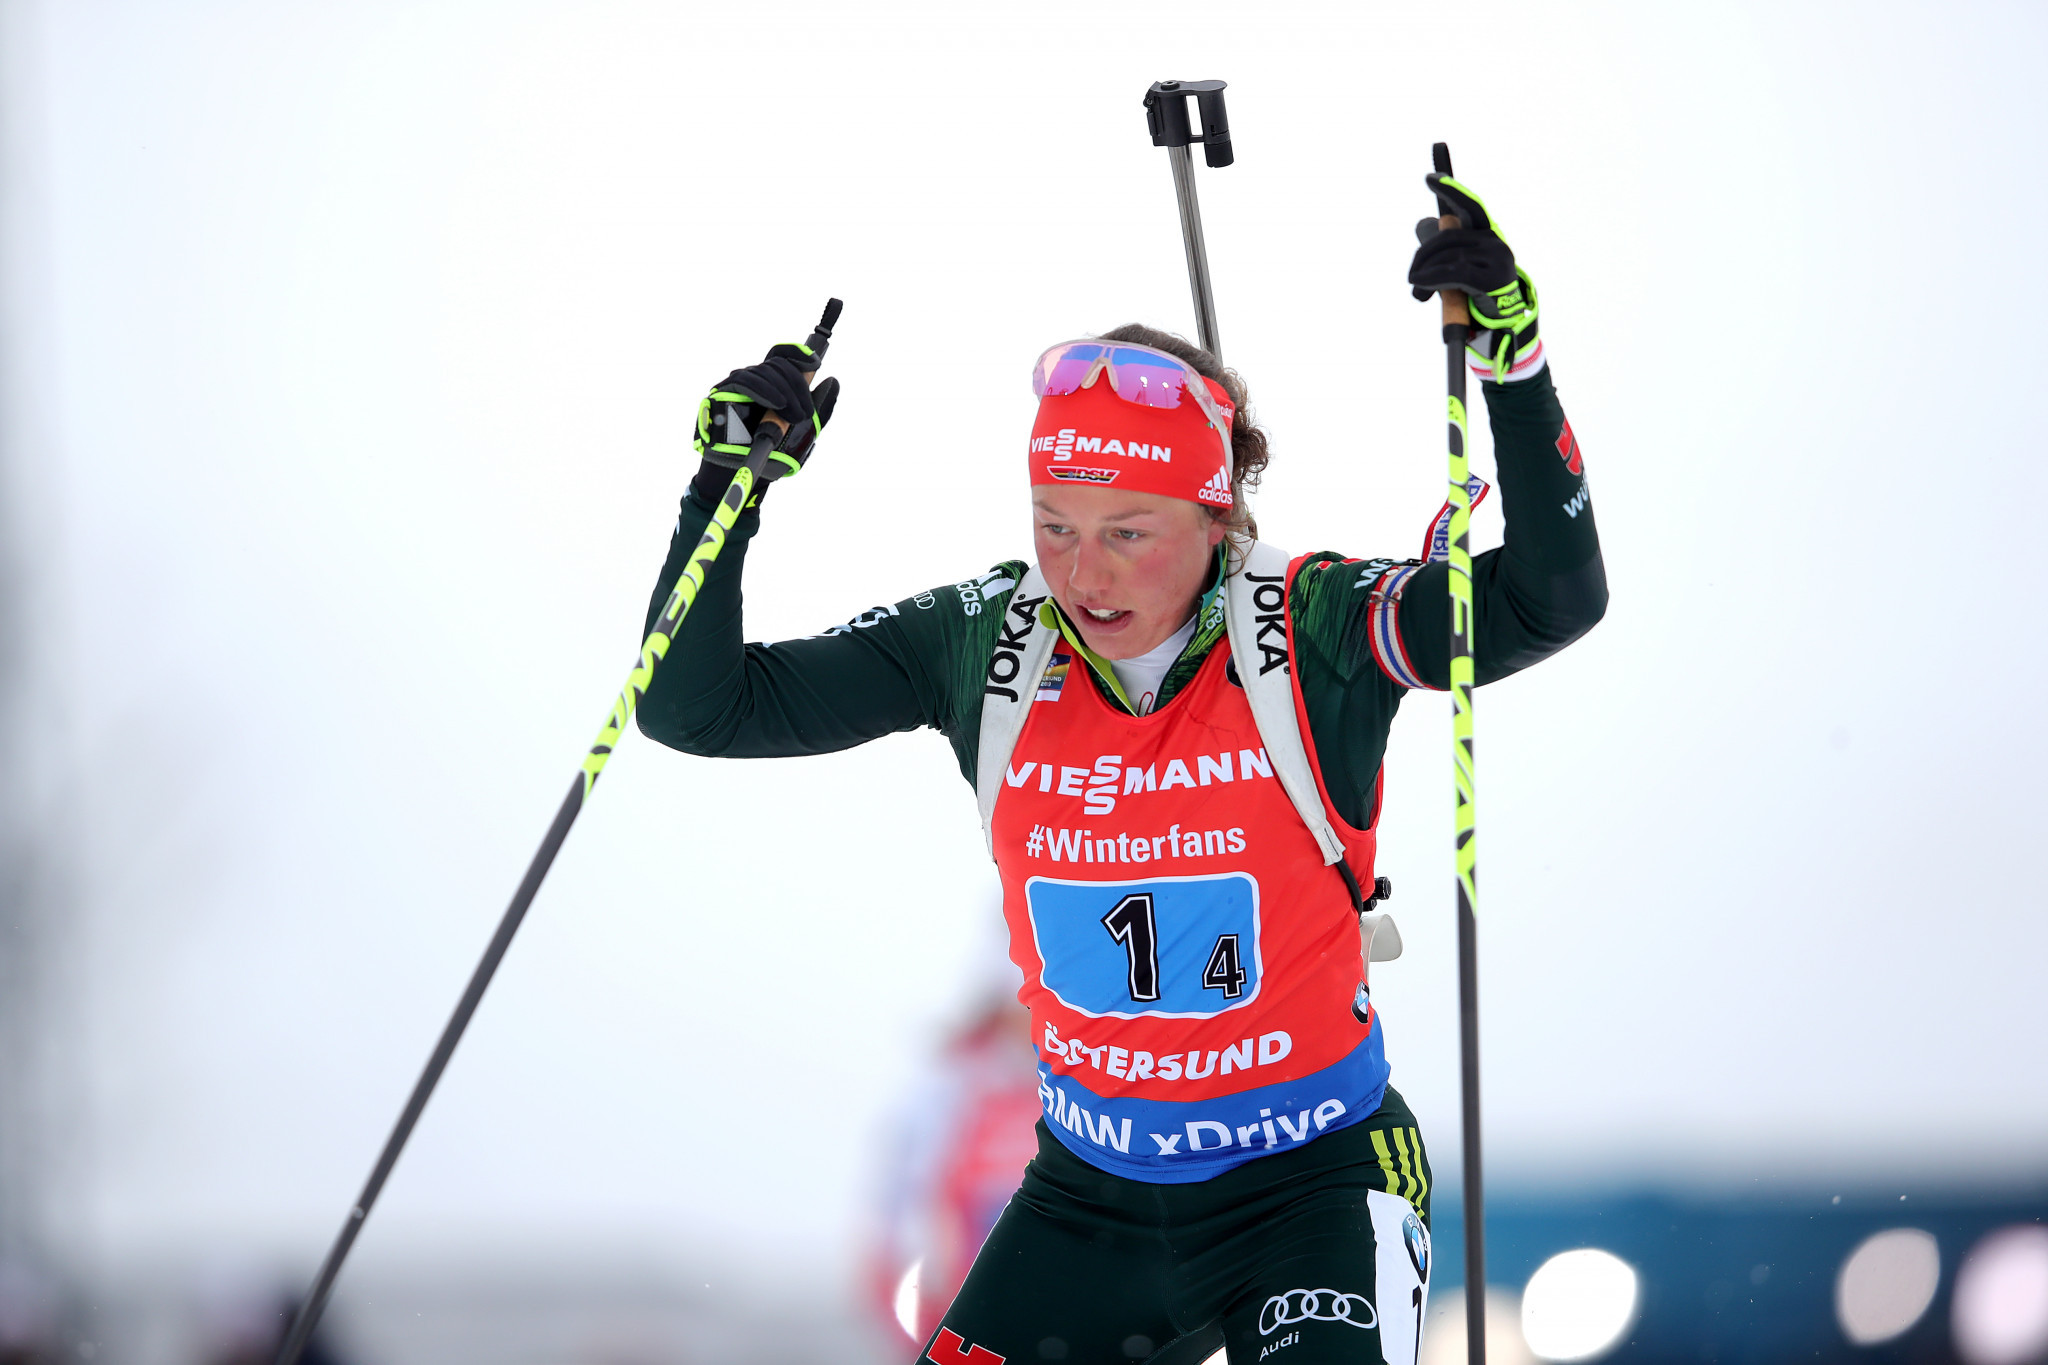 Laura Dahlmeier has decided to call time on her biathlon career ©Getty Images